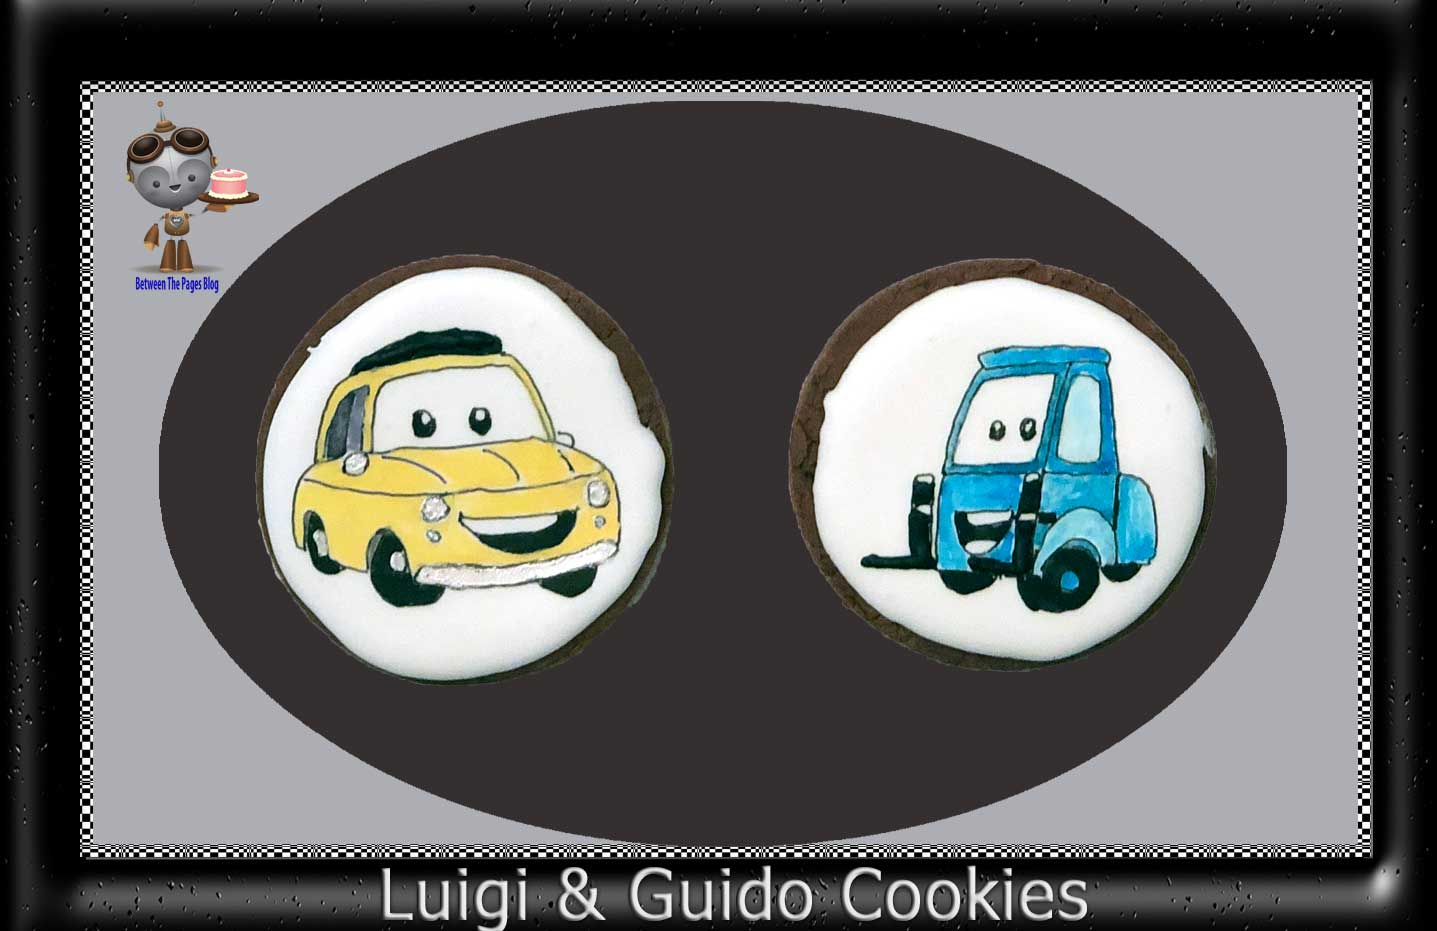 Luigi and Guido Cookies